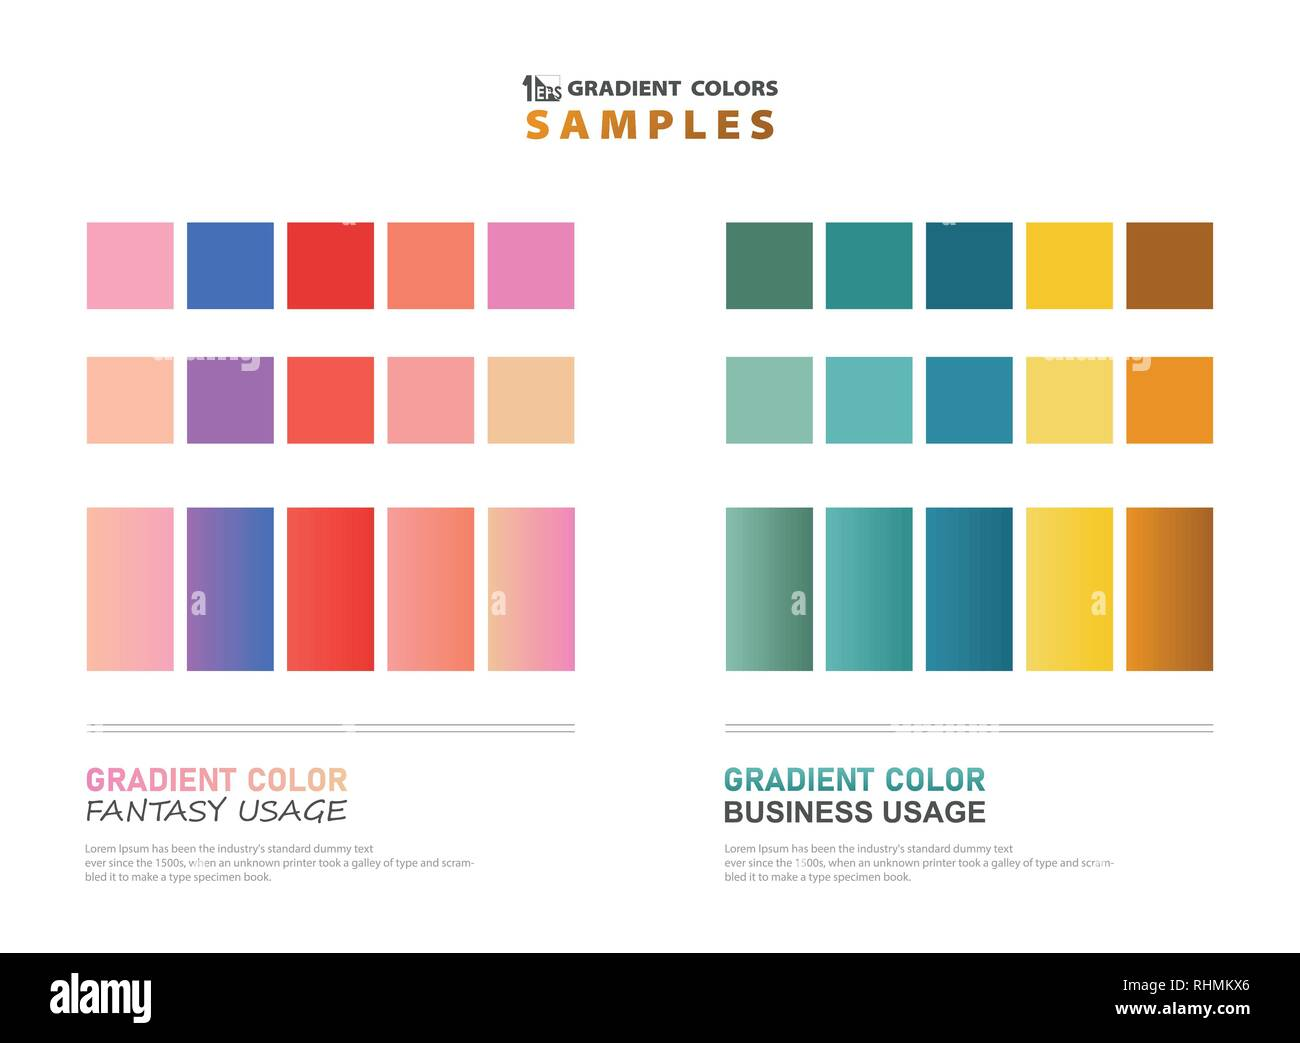 Abstract color theme gradient samples for usage. vector eps10 - Stock Image